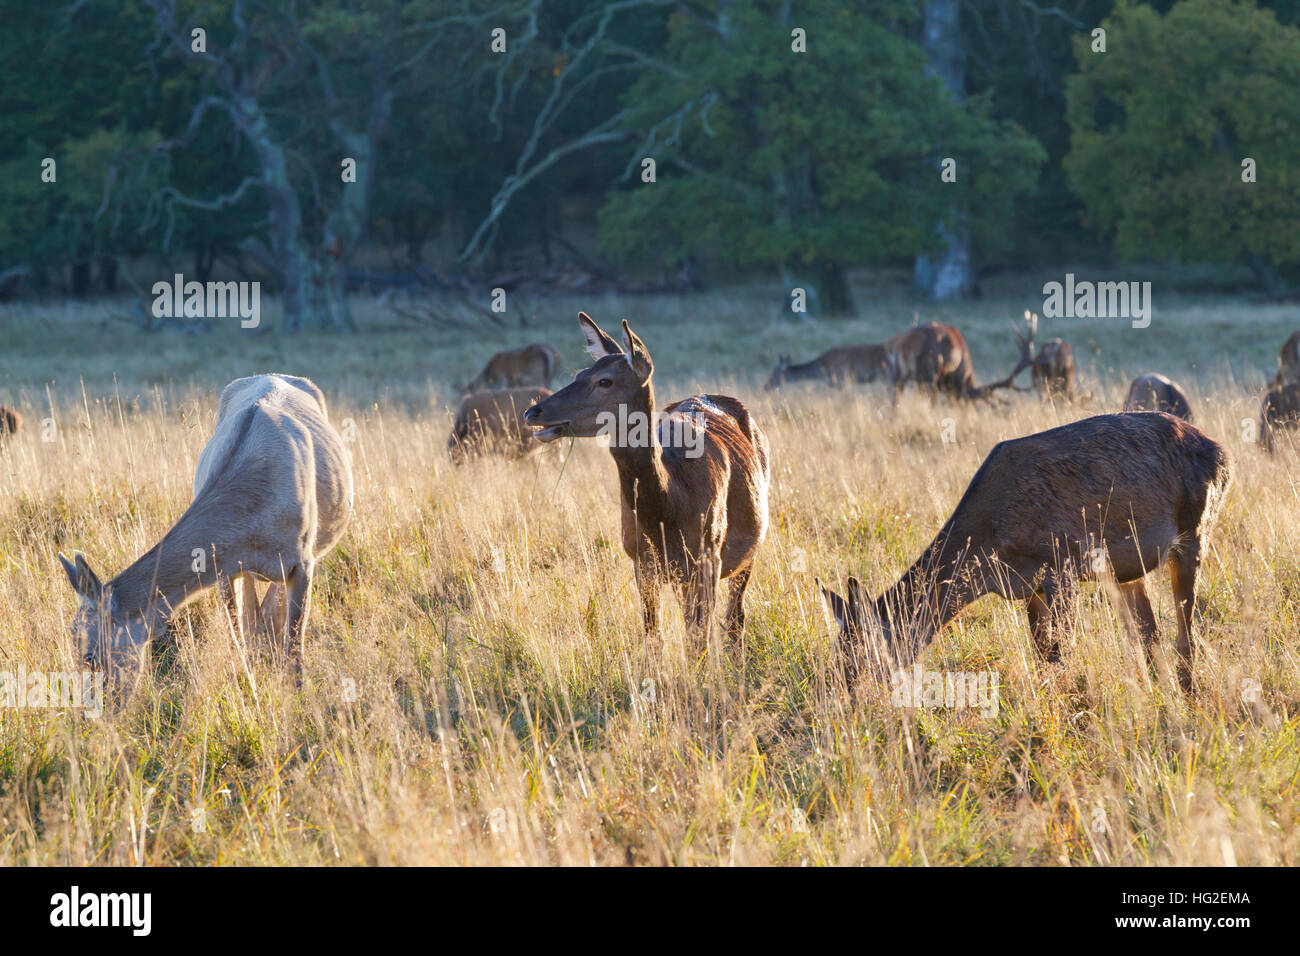 Hinds and stags of red deer grazing in Dyrehaven, The Deer Park, just north of Copenhagen, Denmark, Old oak trees - Stock Image